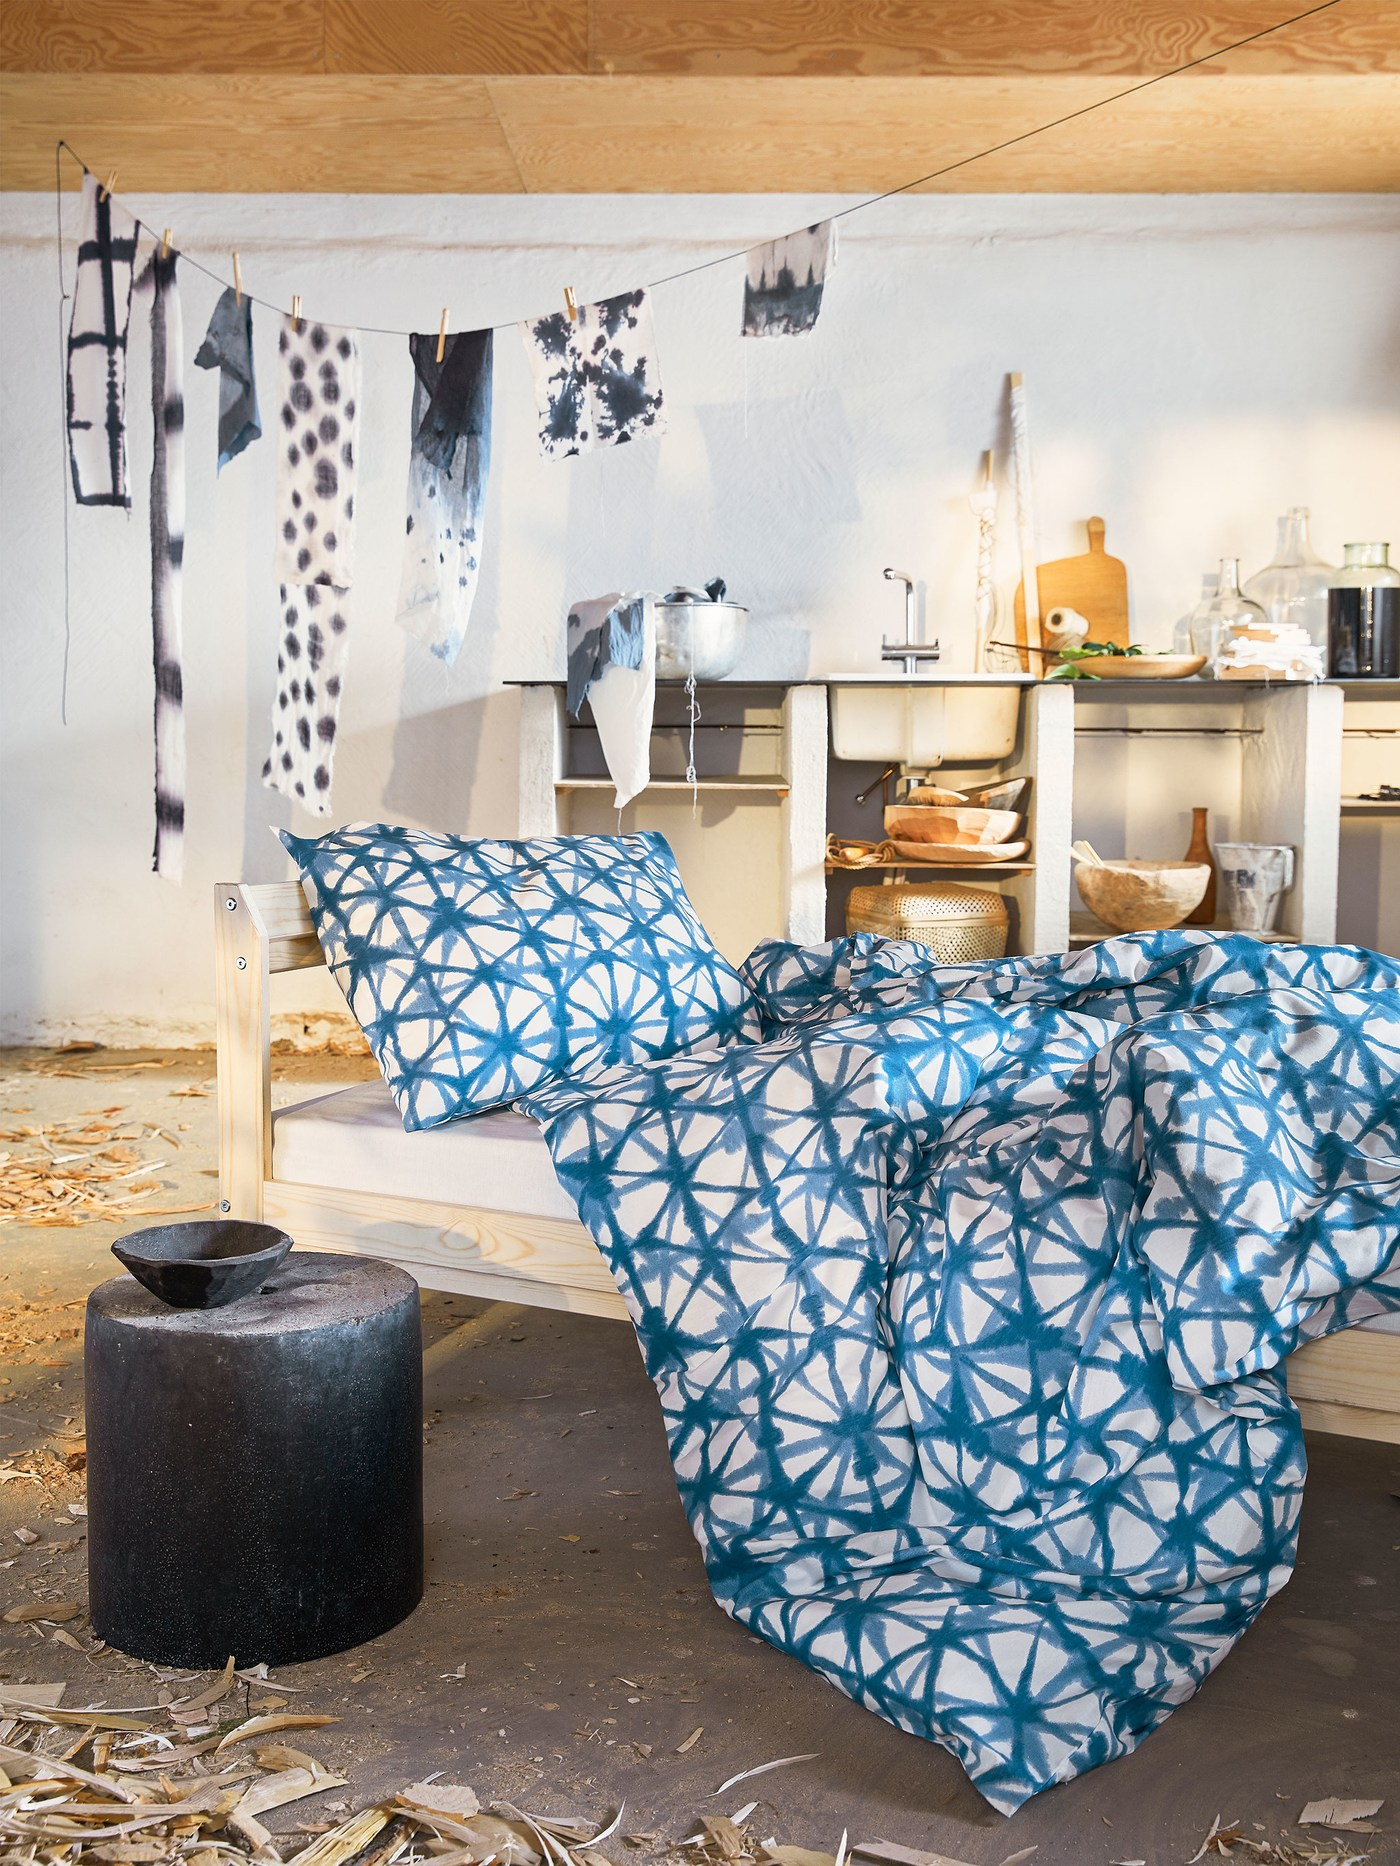 An artsy bedroom, with a bed dressed with a blue-on-white STJÄRNFLOCKA quilt cover that resembles a Japanese dyeing technique.